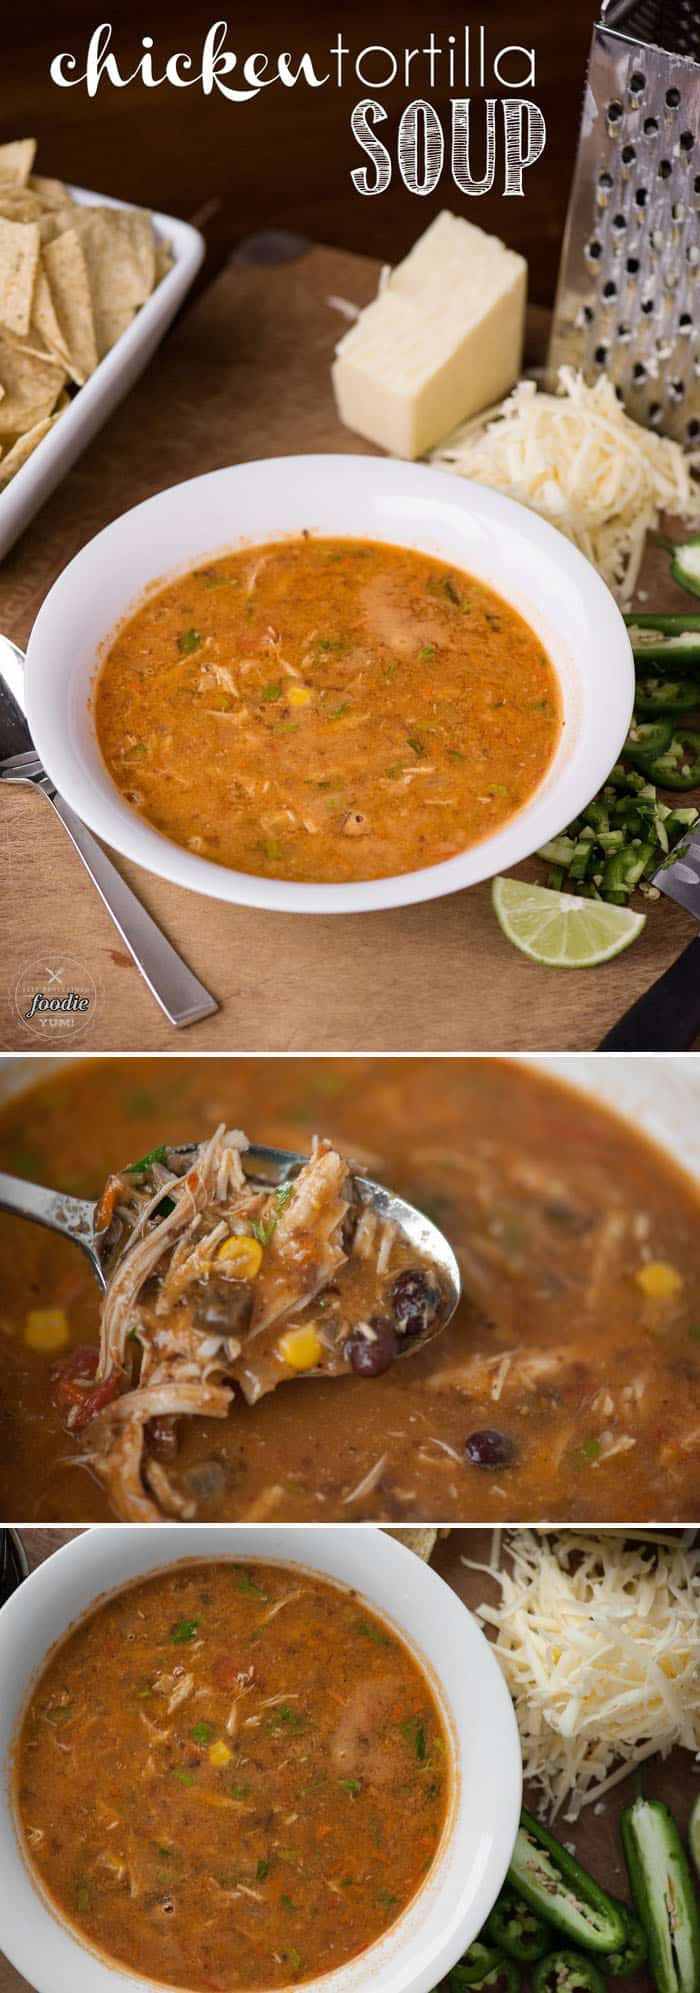 Chicken Tortilla Soup is one of most easy, healthy, & delicious one pot meals you'll serve for family dinner and tastes even better with homemade broth.